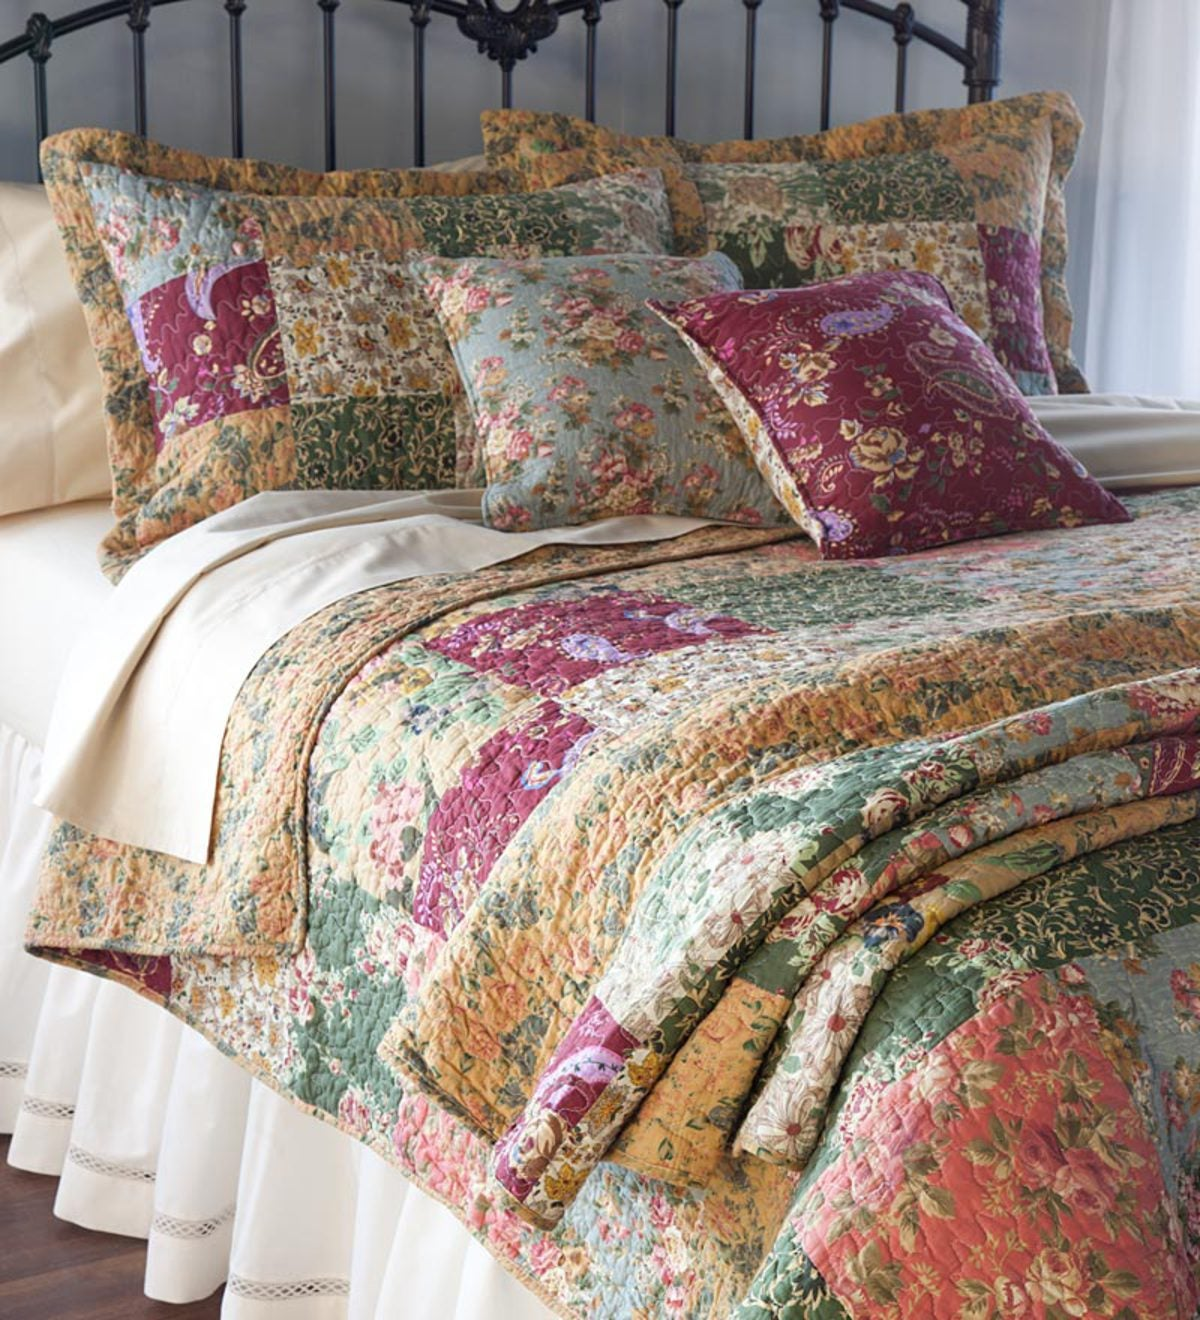 Cotton Floral Paisley Patchwork Quilted Throw